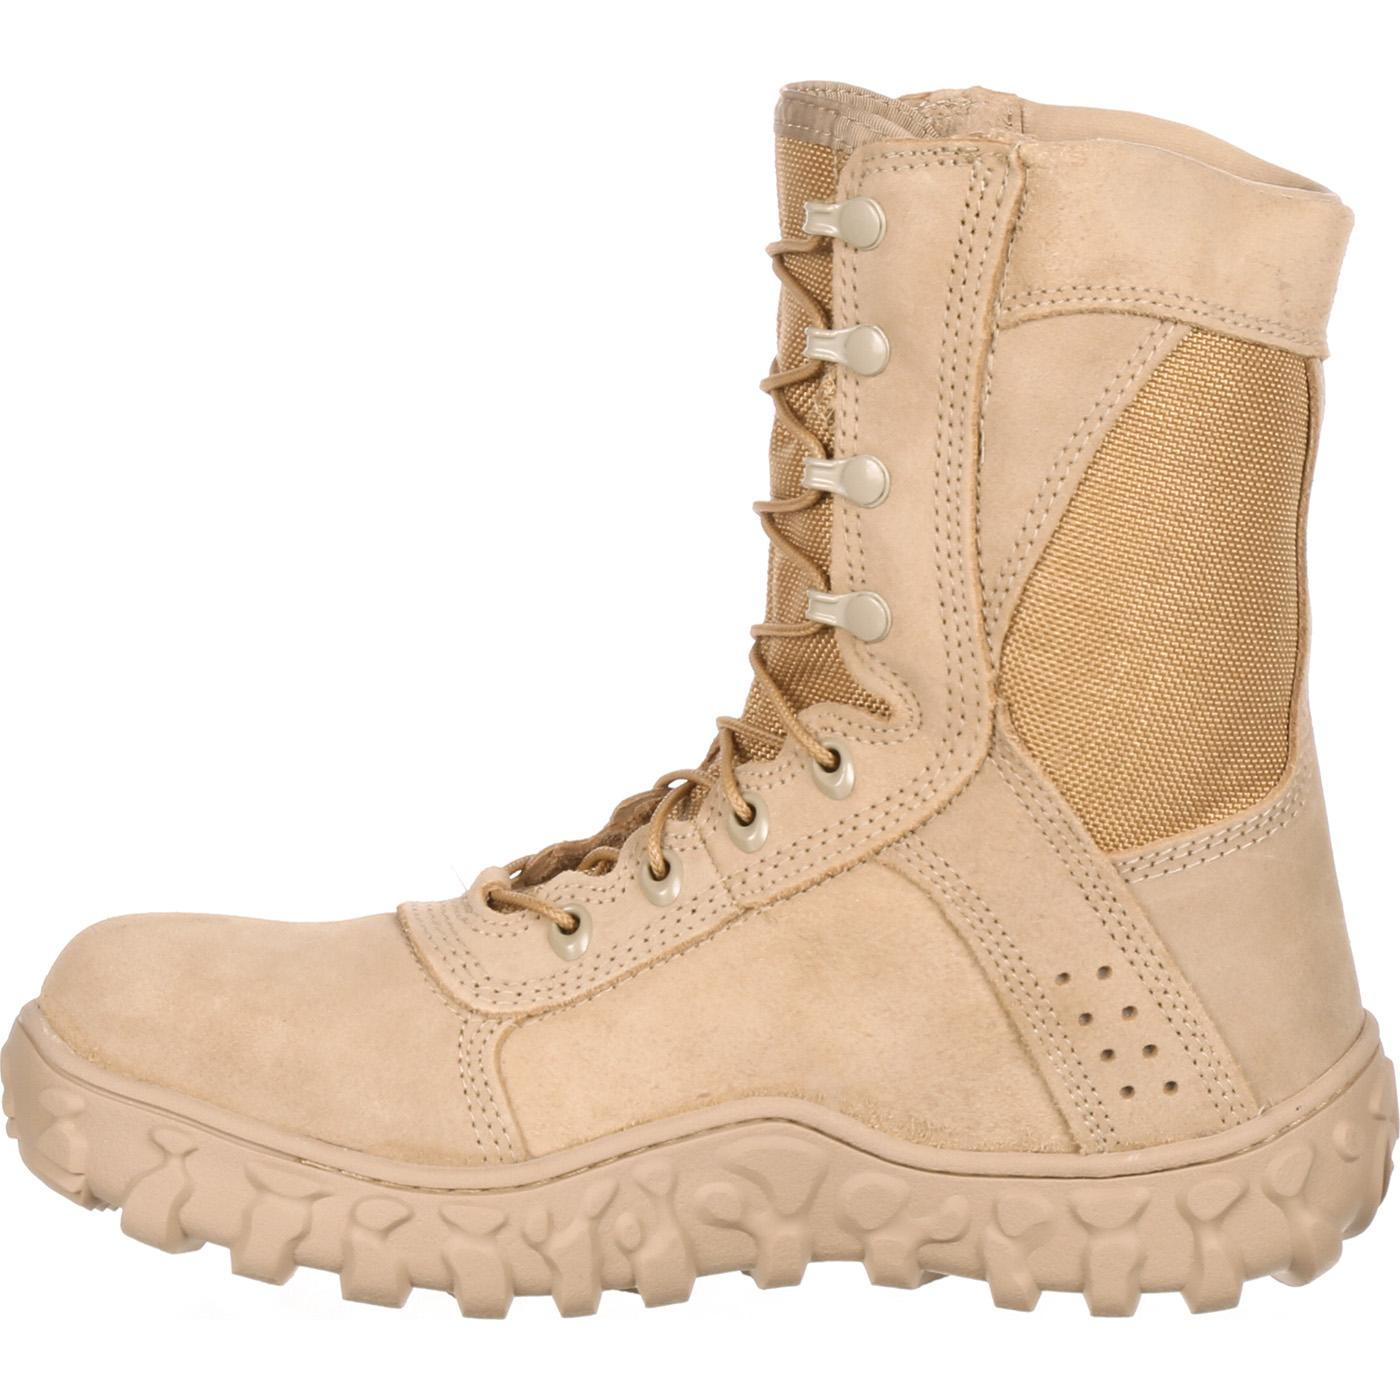 Rocky S2V Unisex Steel Toe Tactical Military Boot, FQ0006101